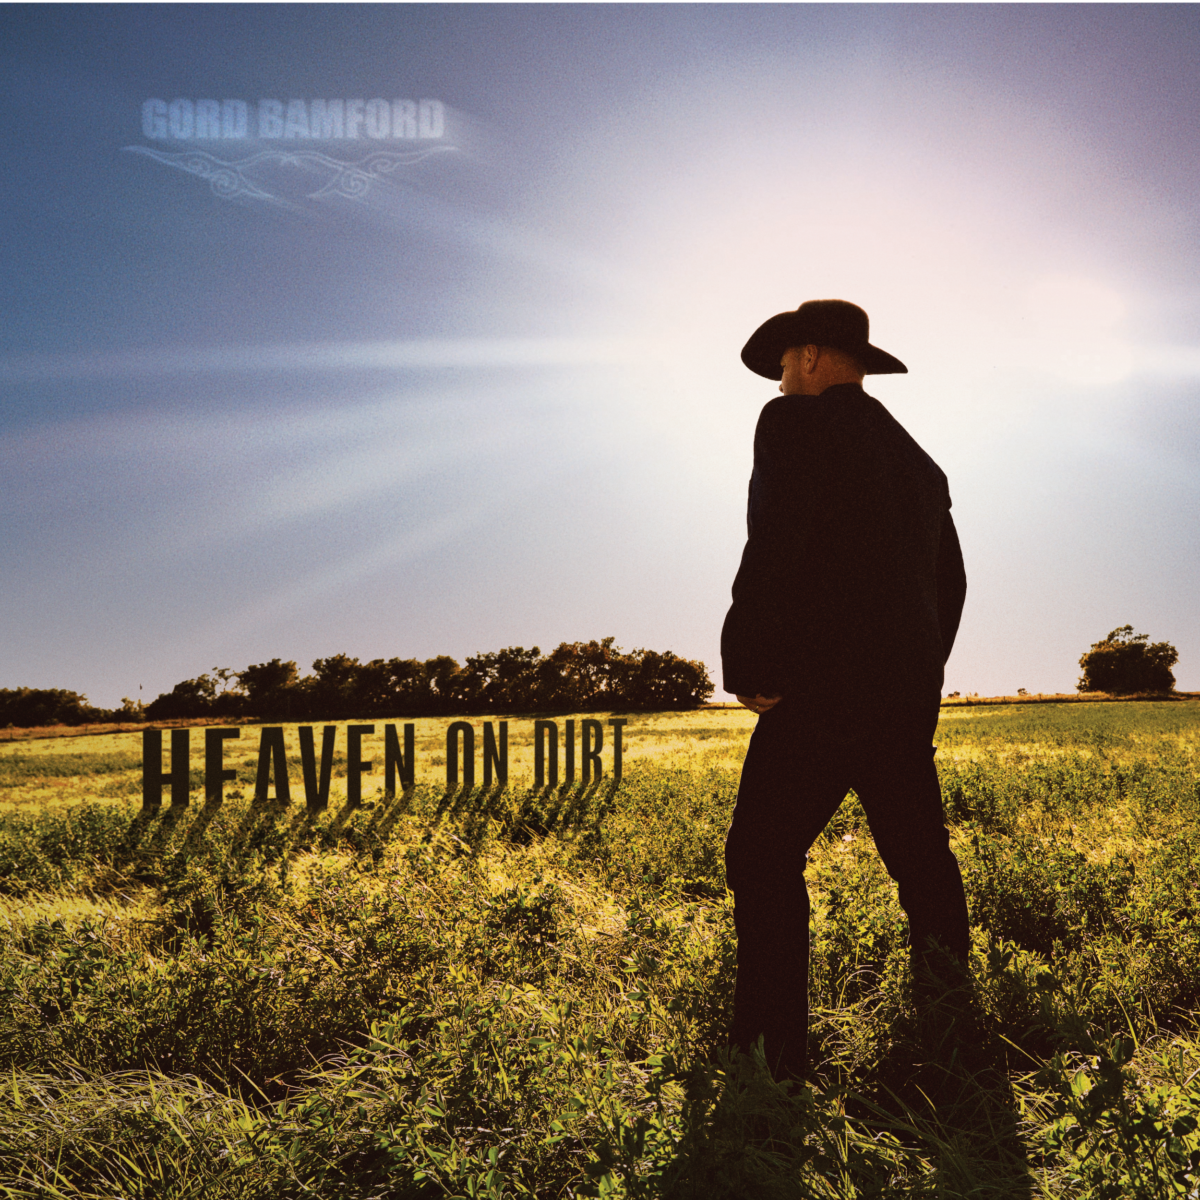 """Gord Bamford Celebrates """"Finding Authentic Happiness"""" With """"Heaven On Dirt"""" Video."""